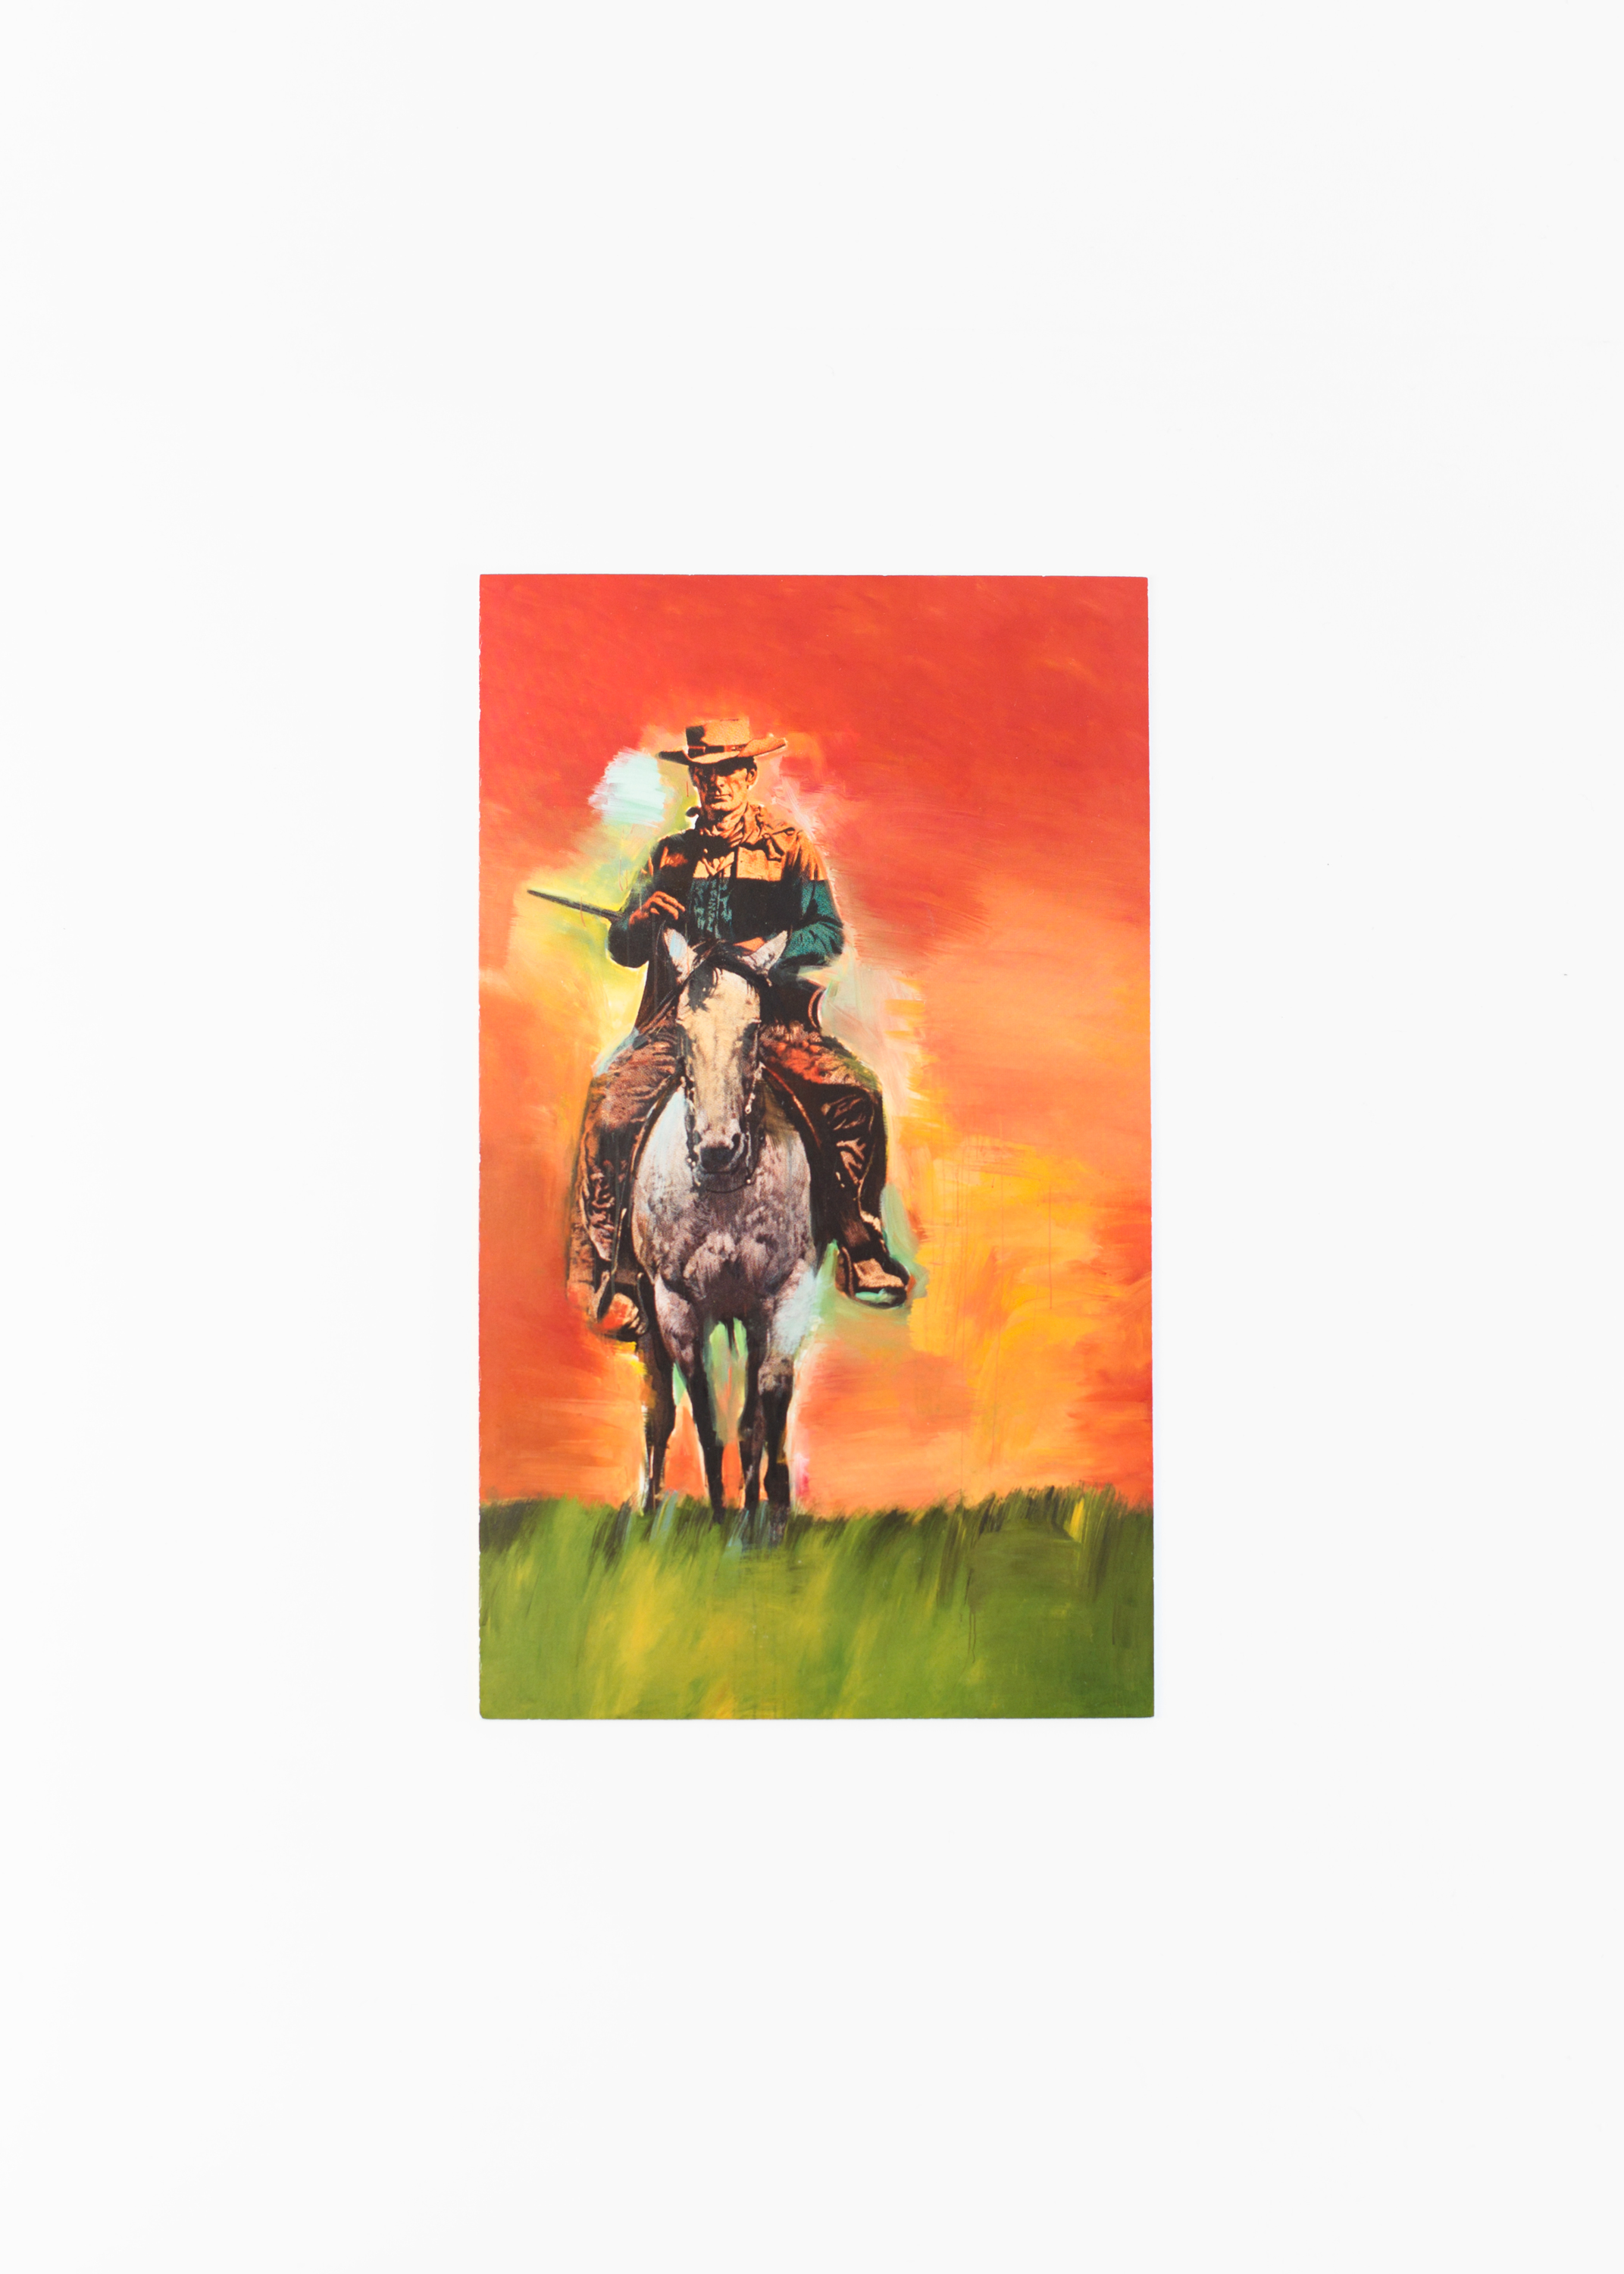 "Richard Prince - Cowboys</br>Invitation Card 14 x 23.5 cm</br>Gagosian 2013</br>€25 <a href=""https://www.paypal.com/cgi-bin/webscr?cmd=_s-xclick&amp;hosted_button_id=AQZQHB2UU4Z7N"">Add to Cart</a>"